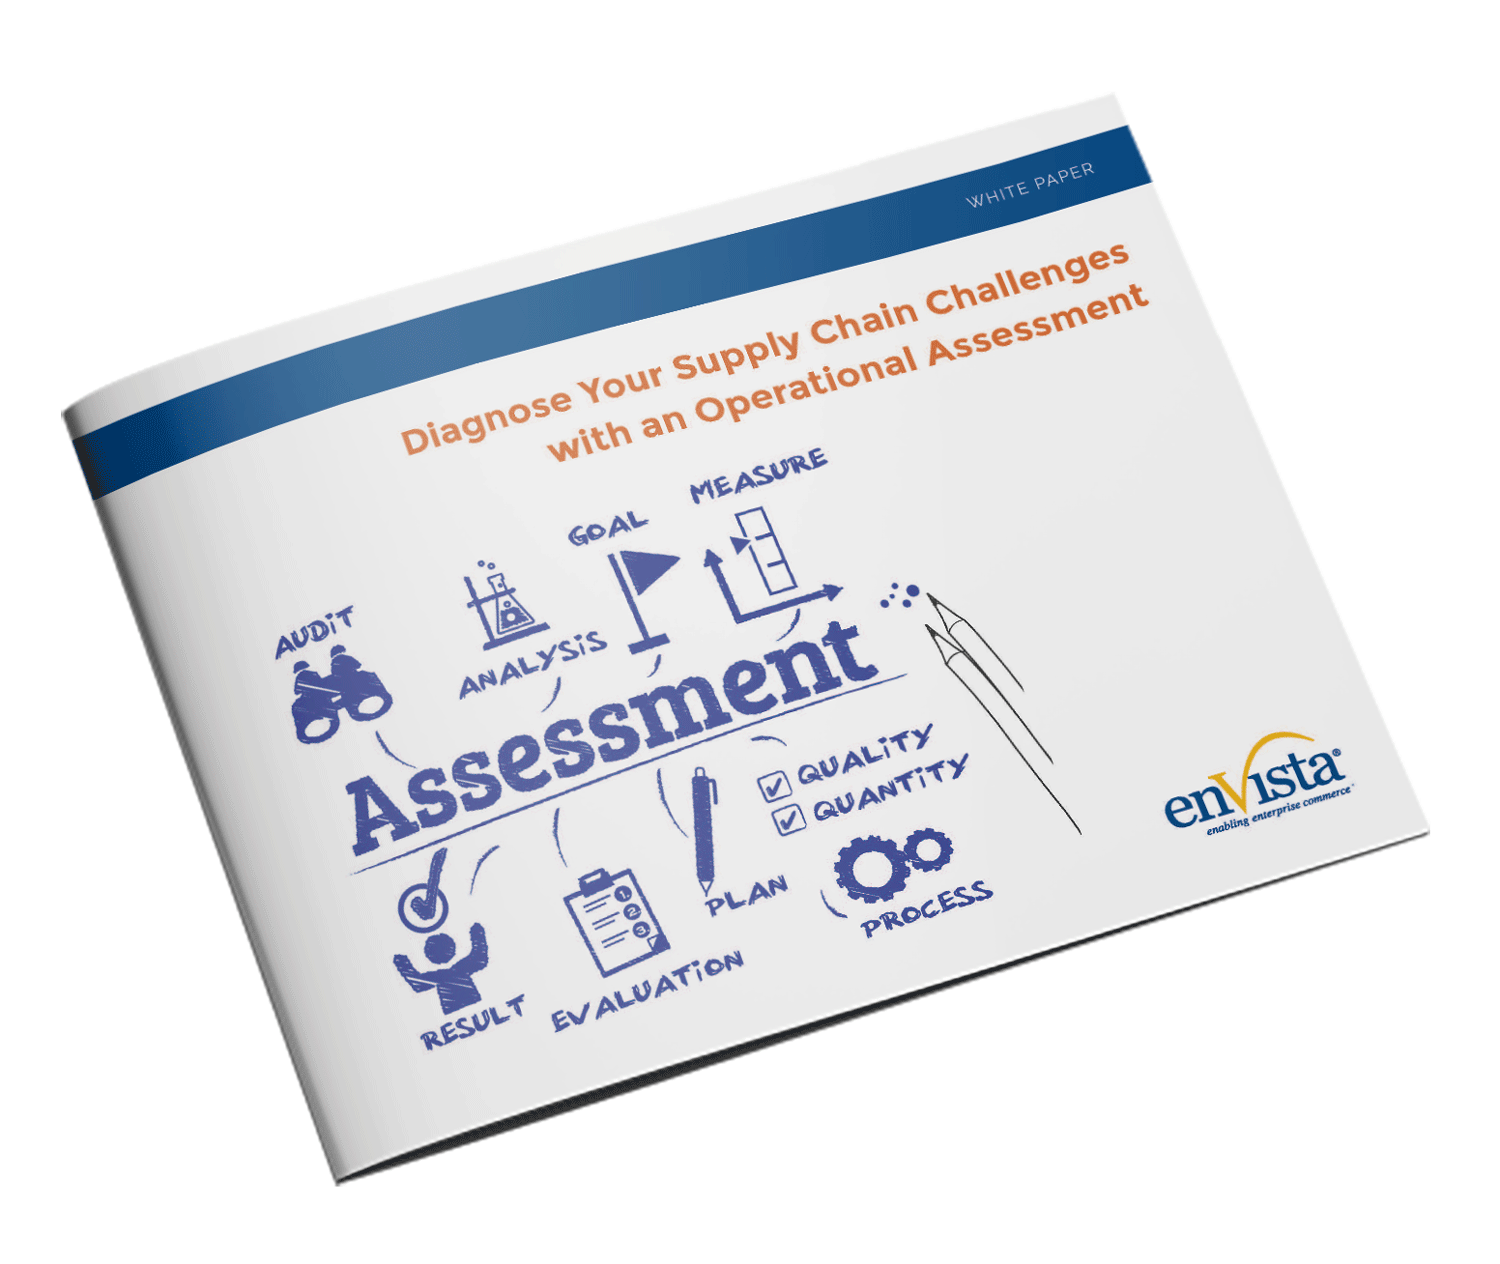 Diagnose Your Supply Chain Challenges with an Operational Assessment Cover